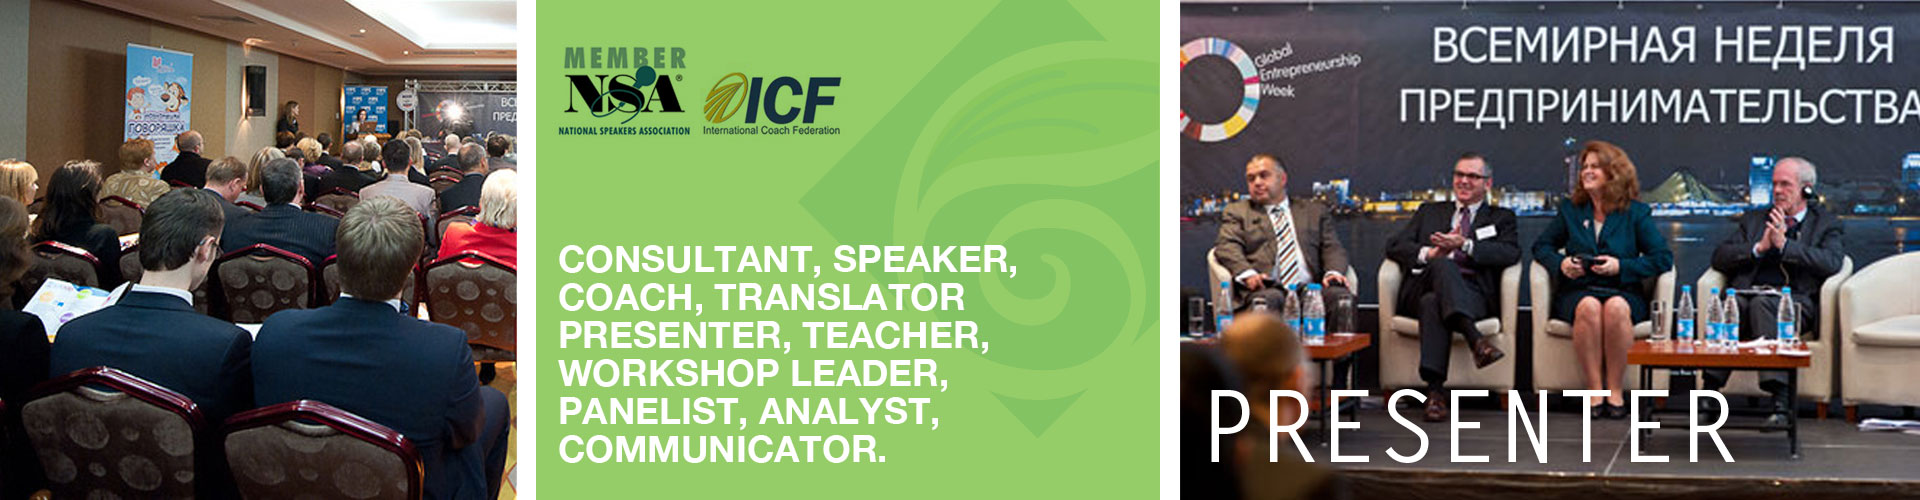 PRESENTER | CONSULTANT, SPEAKER,  COACH, TRANSLATOR PRESENTER, TEACHER, WORKSHOP LEADER, PANELIST, ANALYST, COMMUNICATOR.